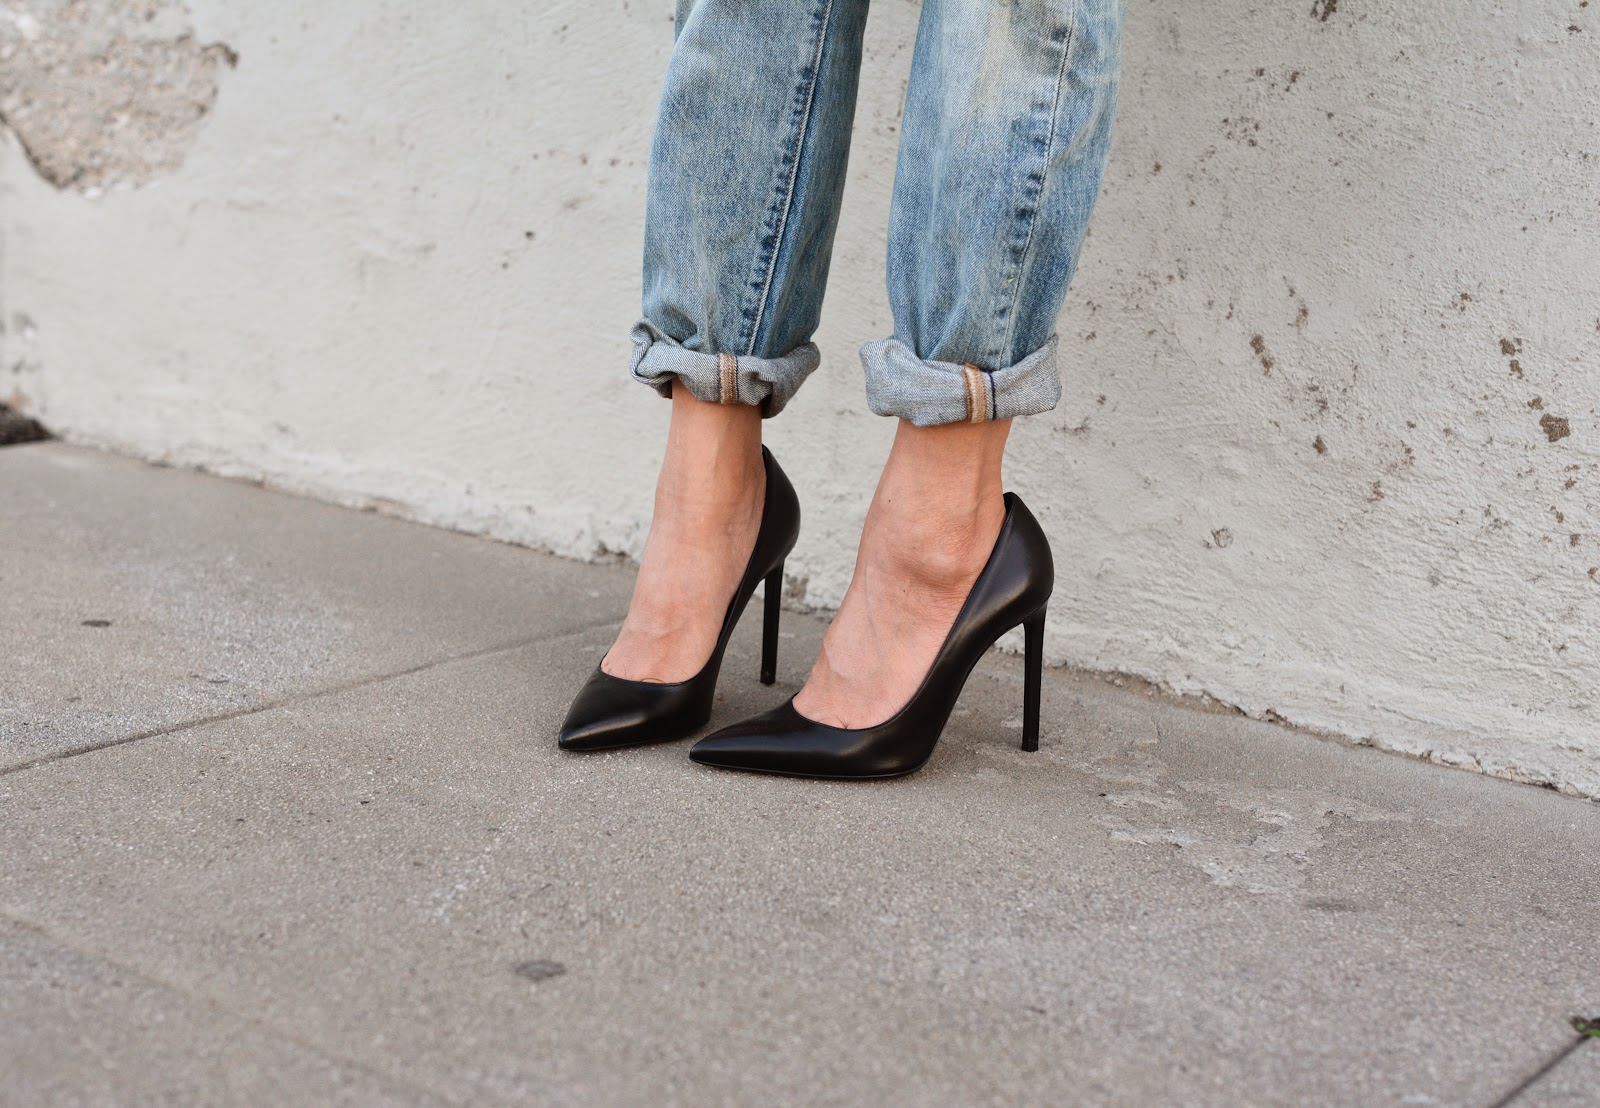 classic-black-pumps-in-style